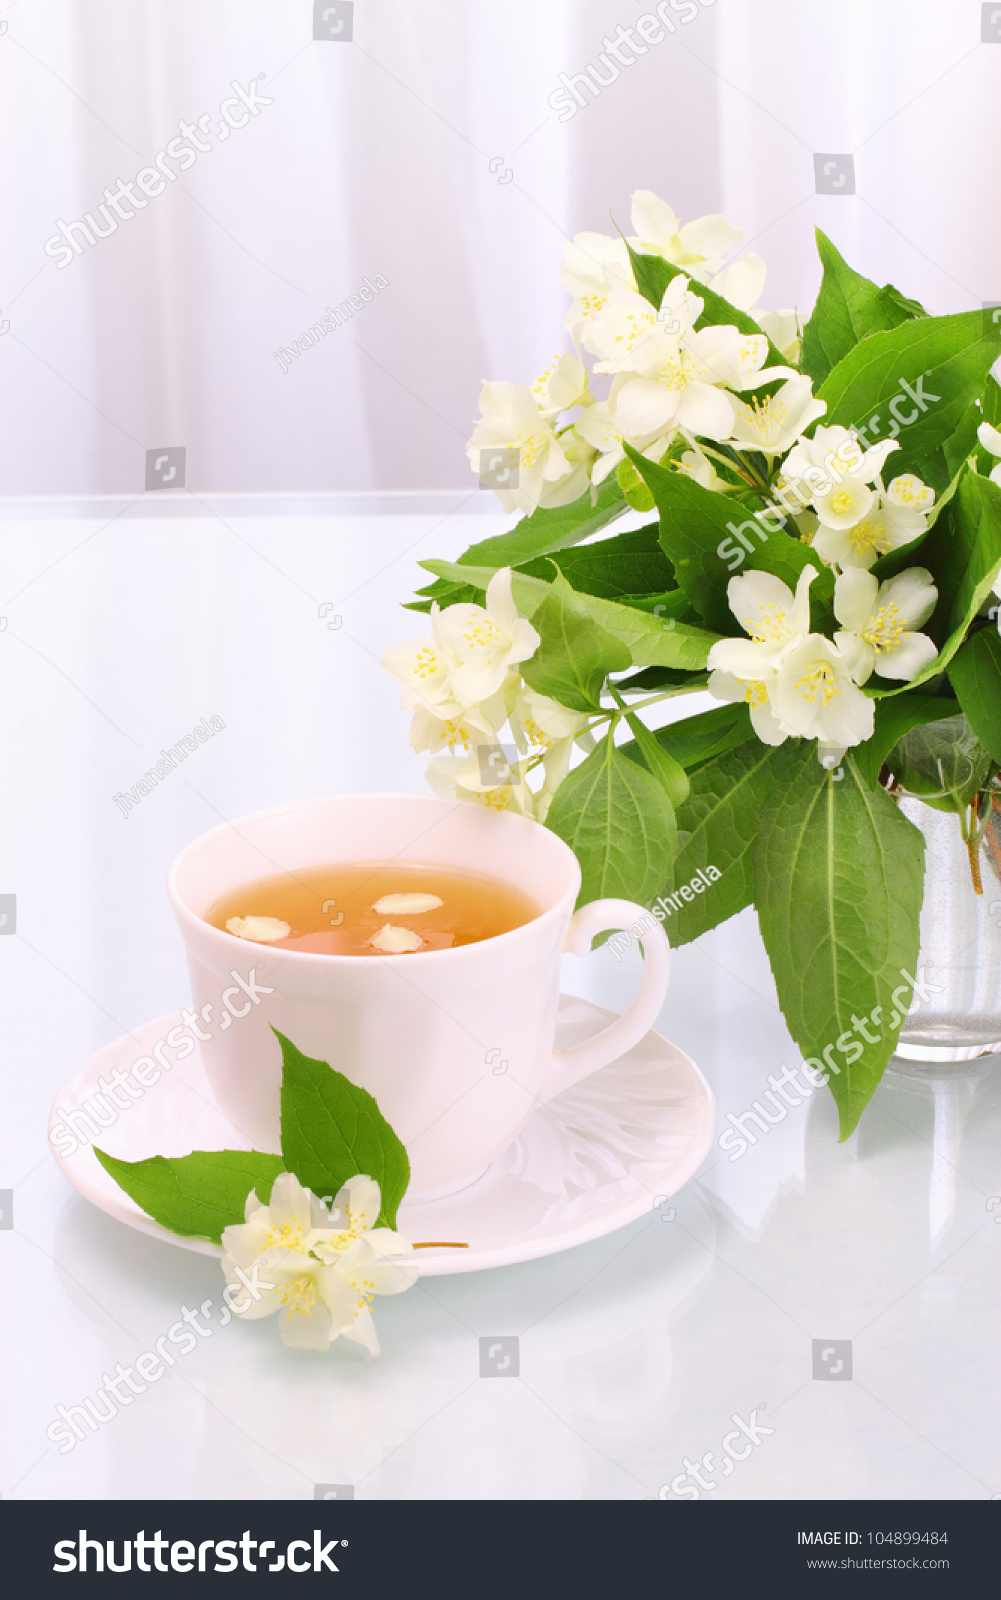 Cup Tasty Jasmine Tea Flowers Stock Photo Royalty Free 104899484